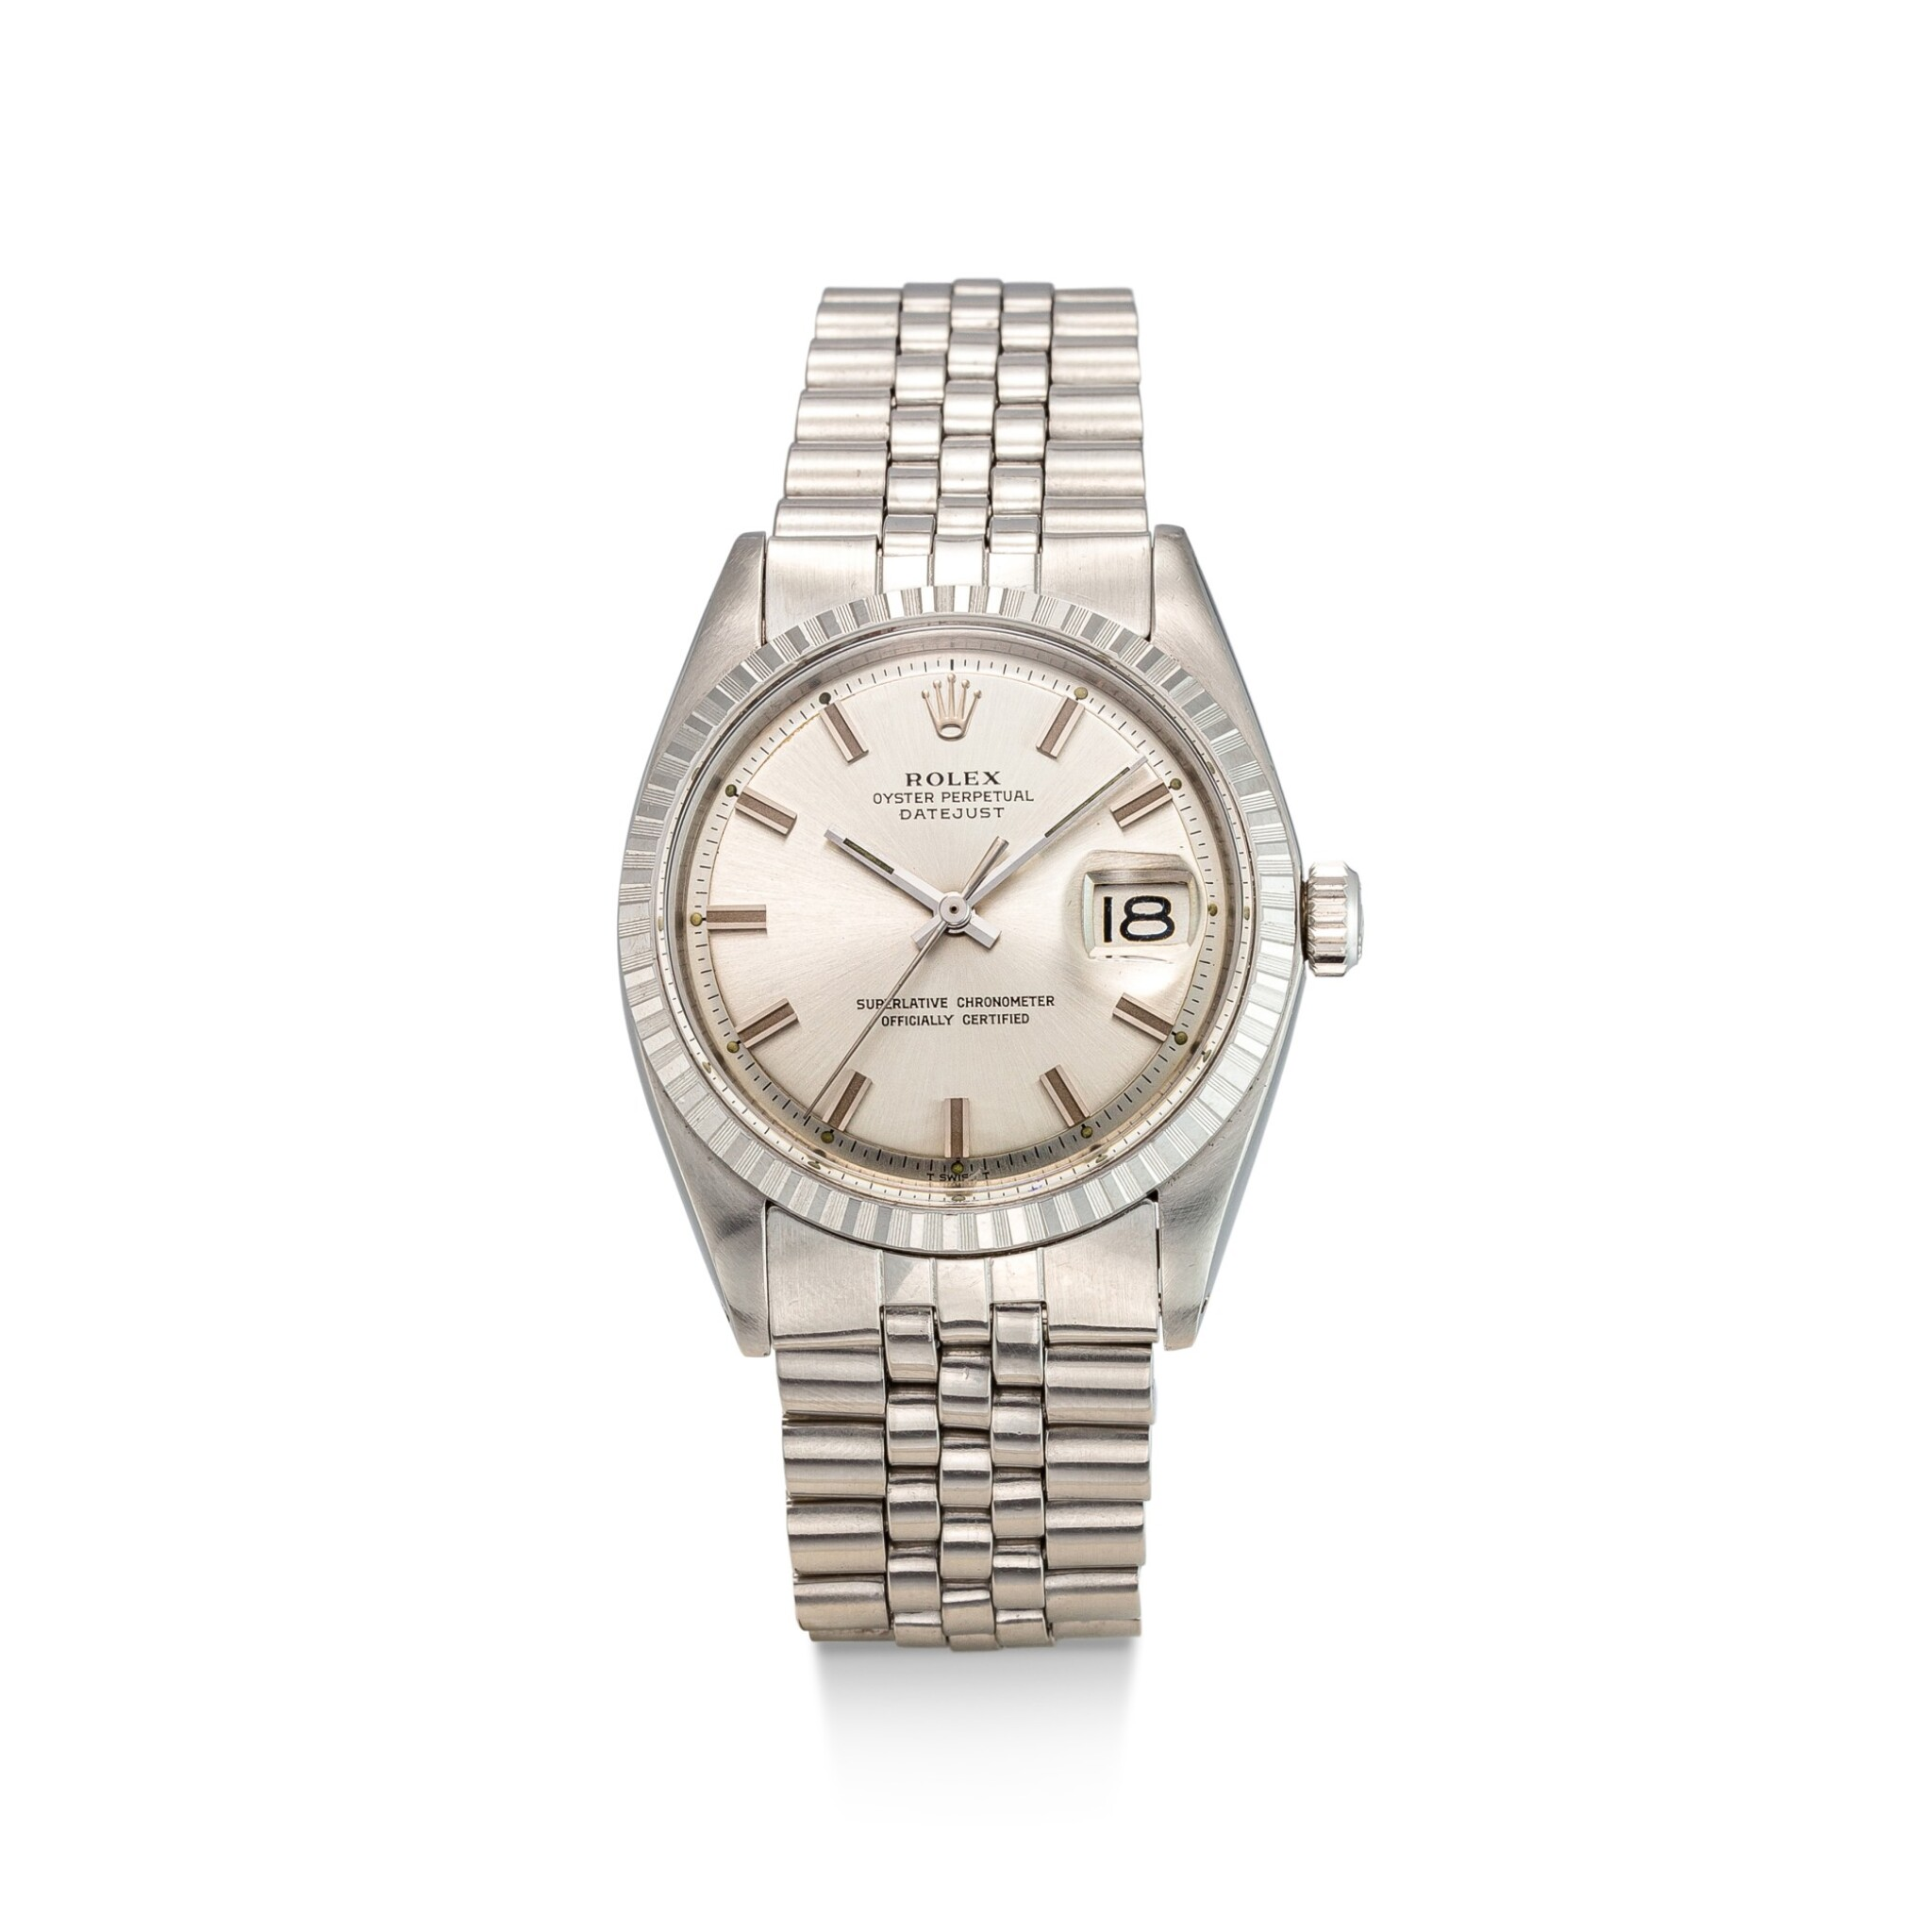 View full screen - View 1 of Lot 8033. ROLEX | DATEJUST, REFERENCE 1603 | A STAINLESS STEEL WRISTWATCH WITH DATE AND BRACELET, CIRCA 1971 | 勞力士 | Datejust 型號1603 精鋼鏈帶腕錶,備日期顯示,約1971年製.